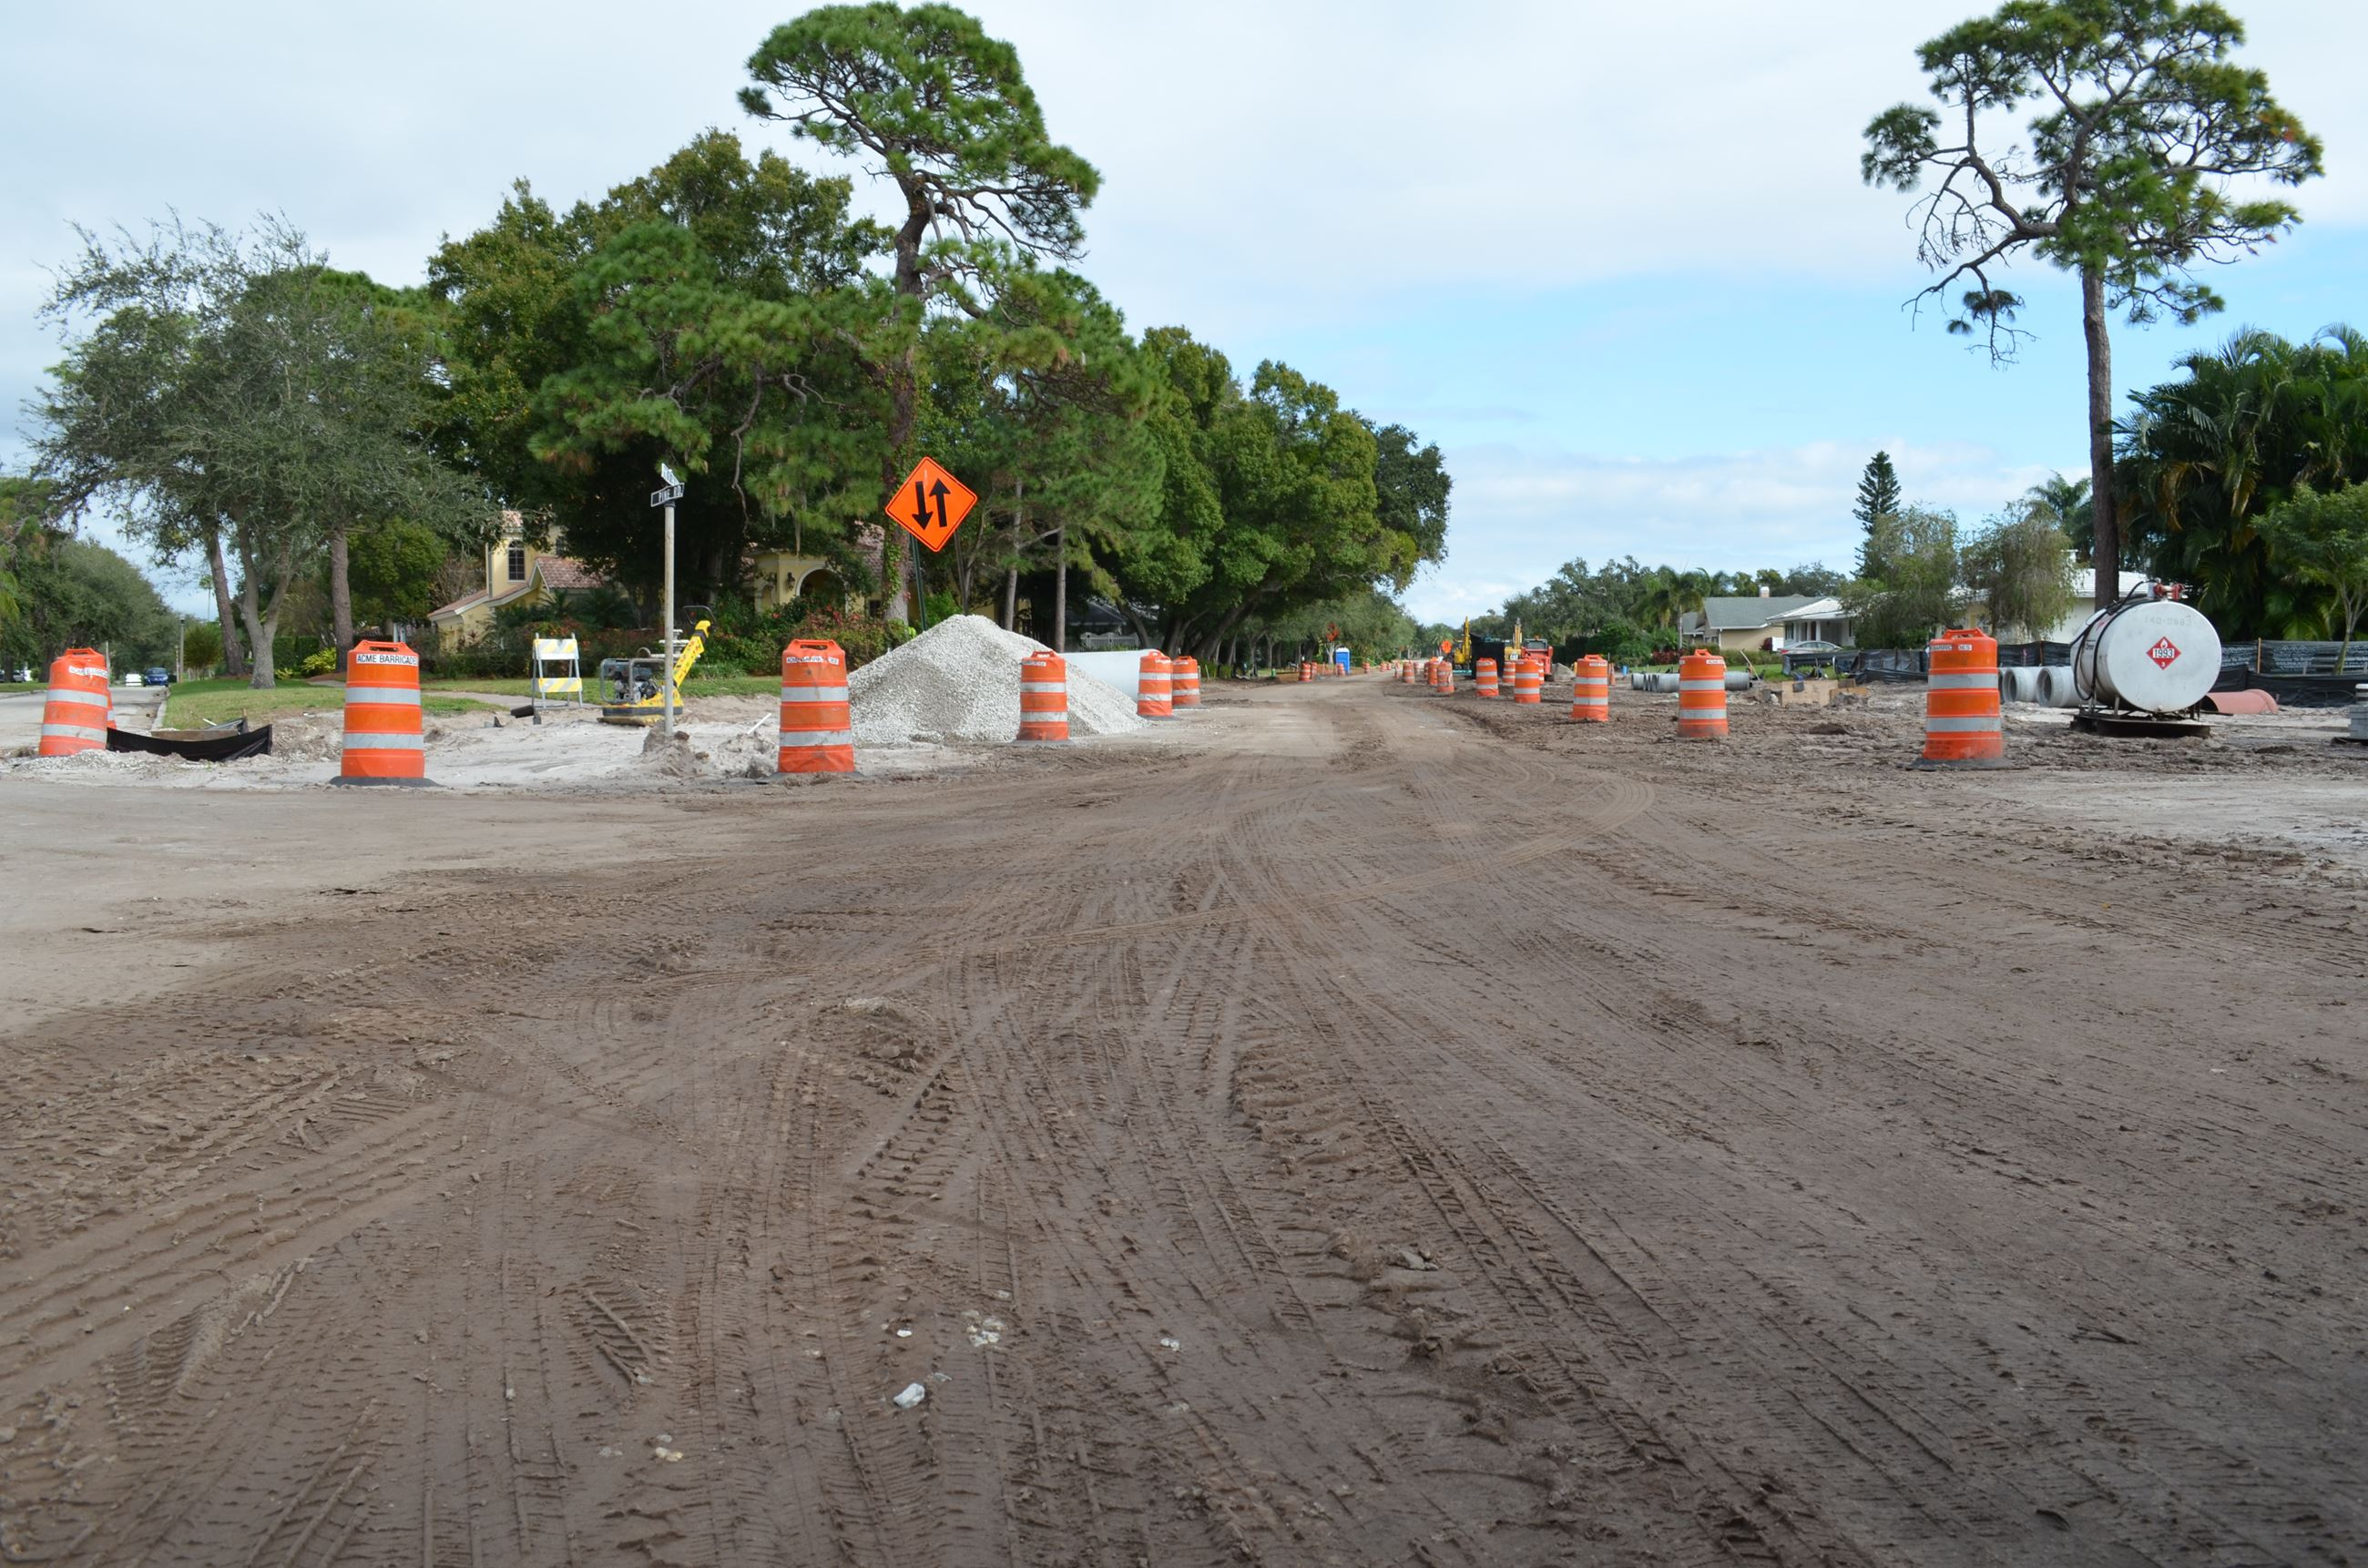 The intersection of Ponce de Leon Blvd. and Oleander Rd. during construction. The road is dirt with